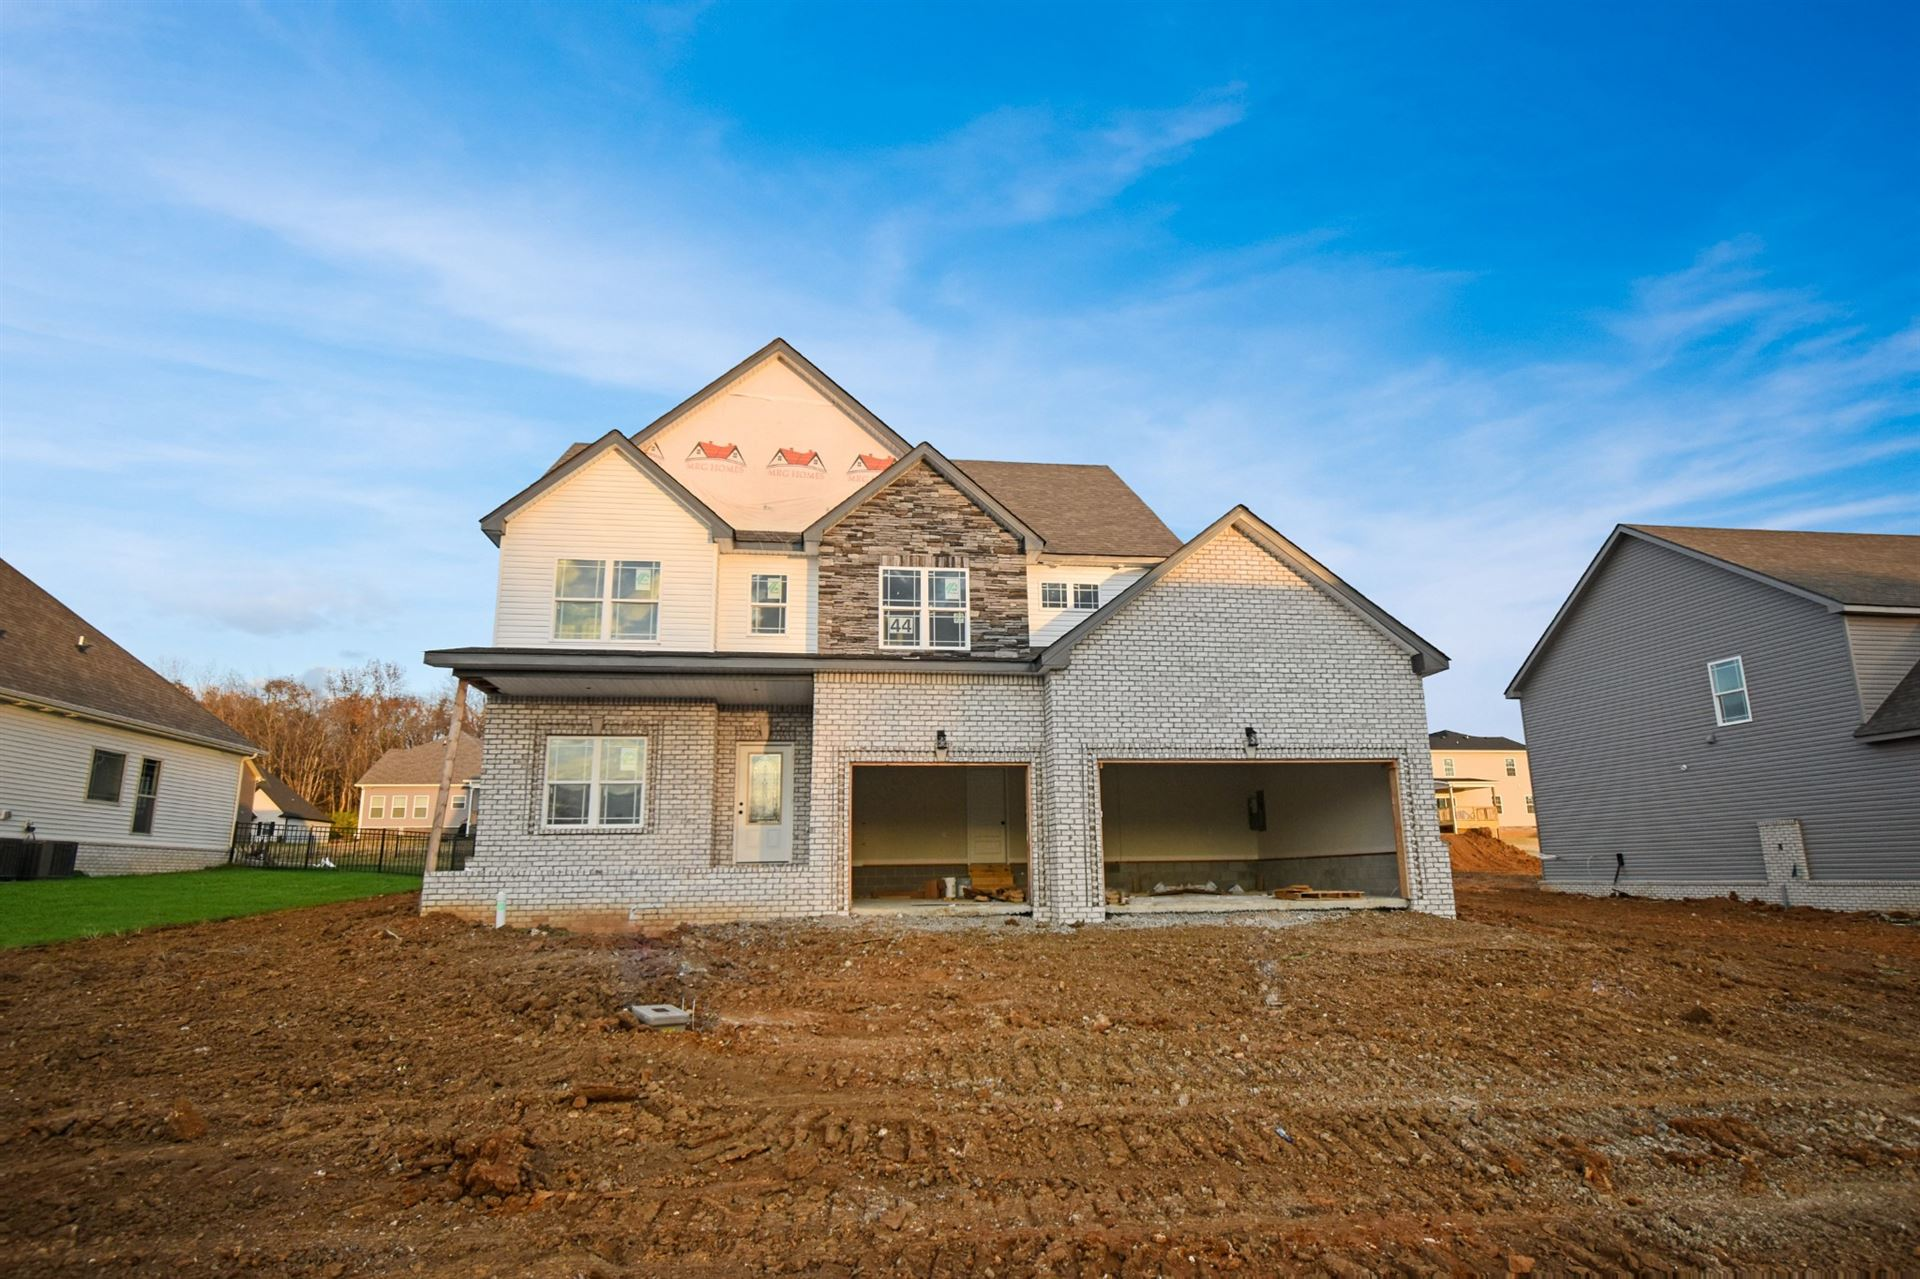 44 River Chase, Clarksville, TN 37043 - MLS#: 2292319